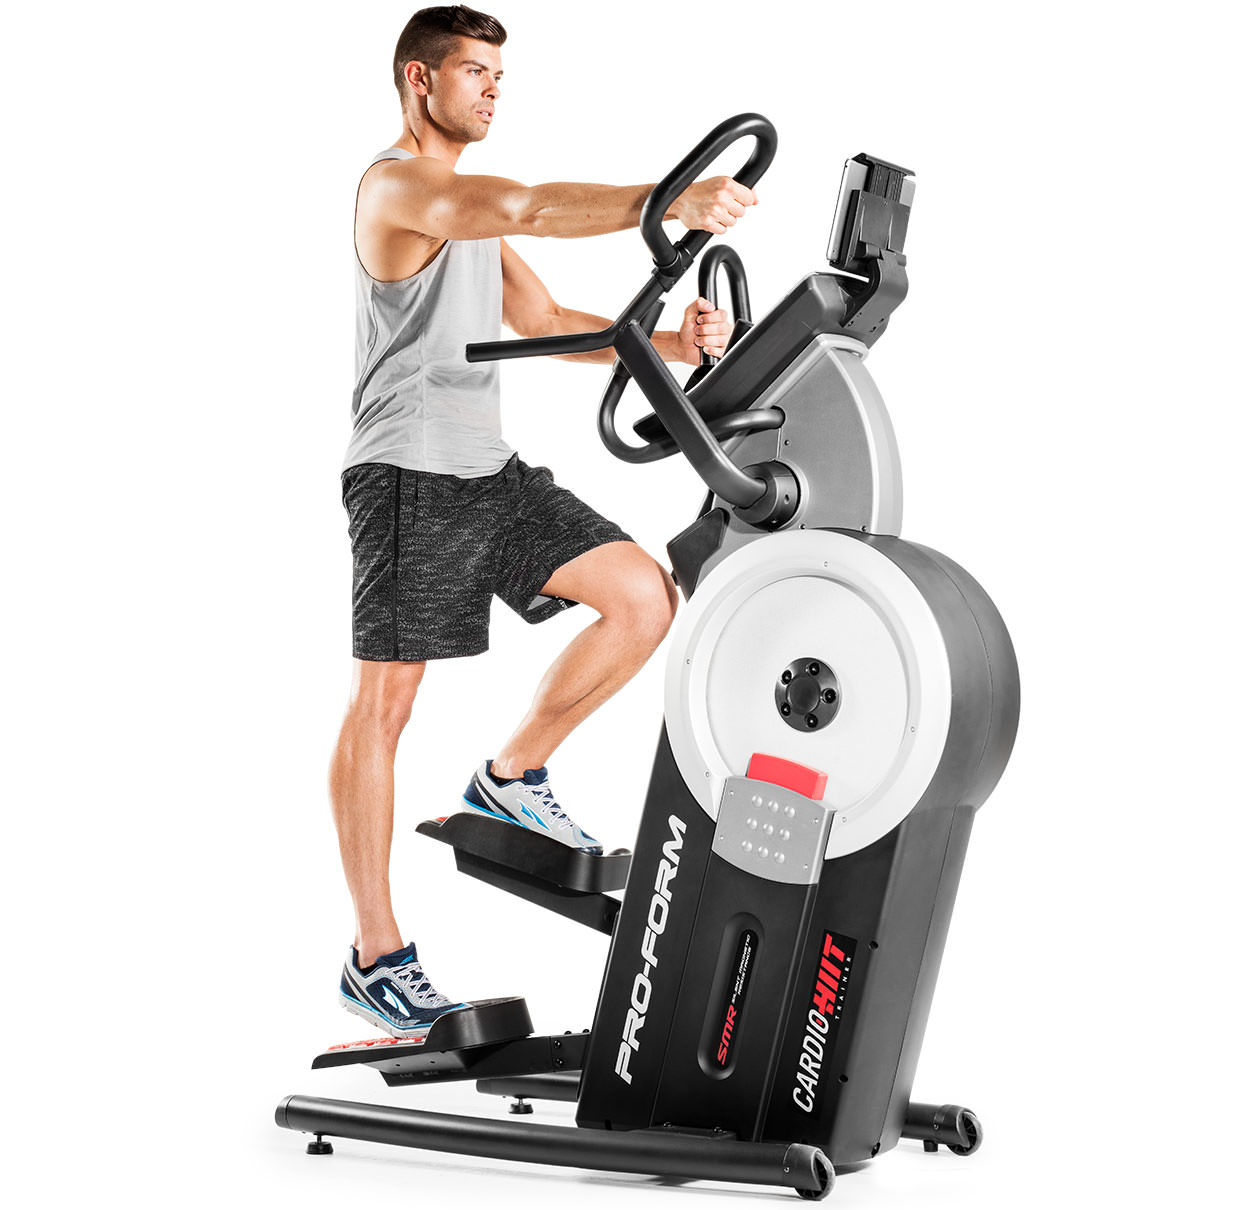 Proform Hiit Vs Elliptical Trainer Which Is The Best Choice